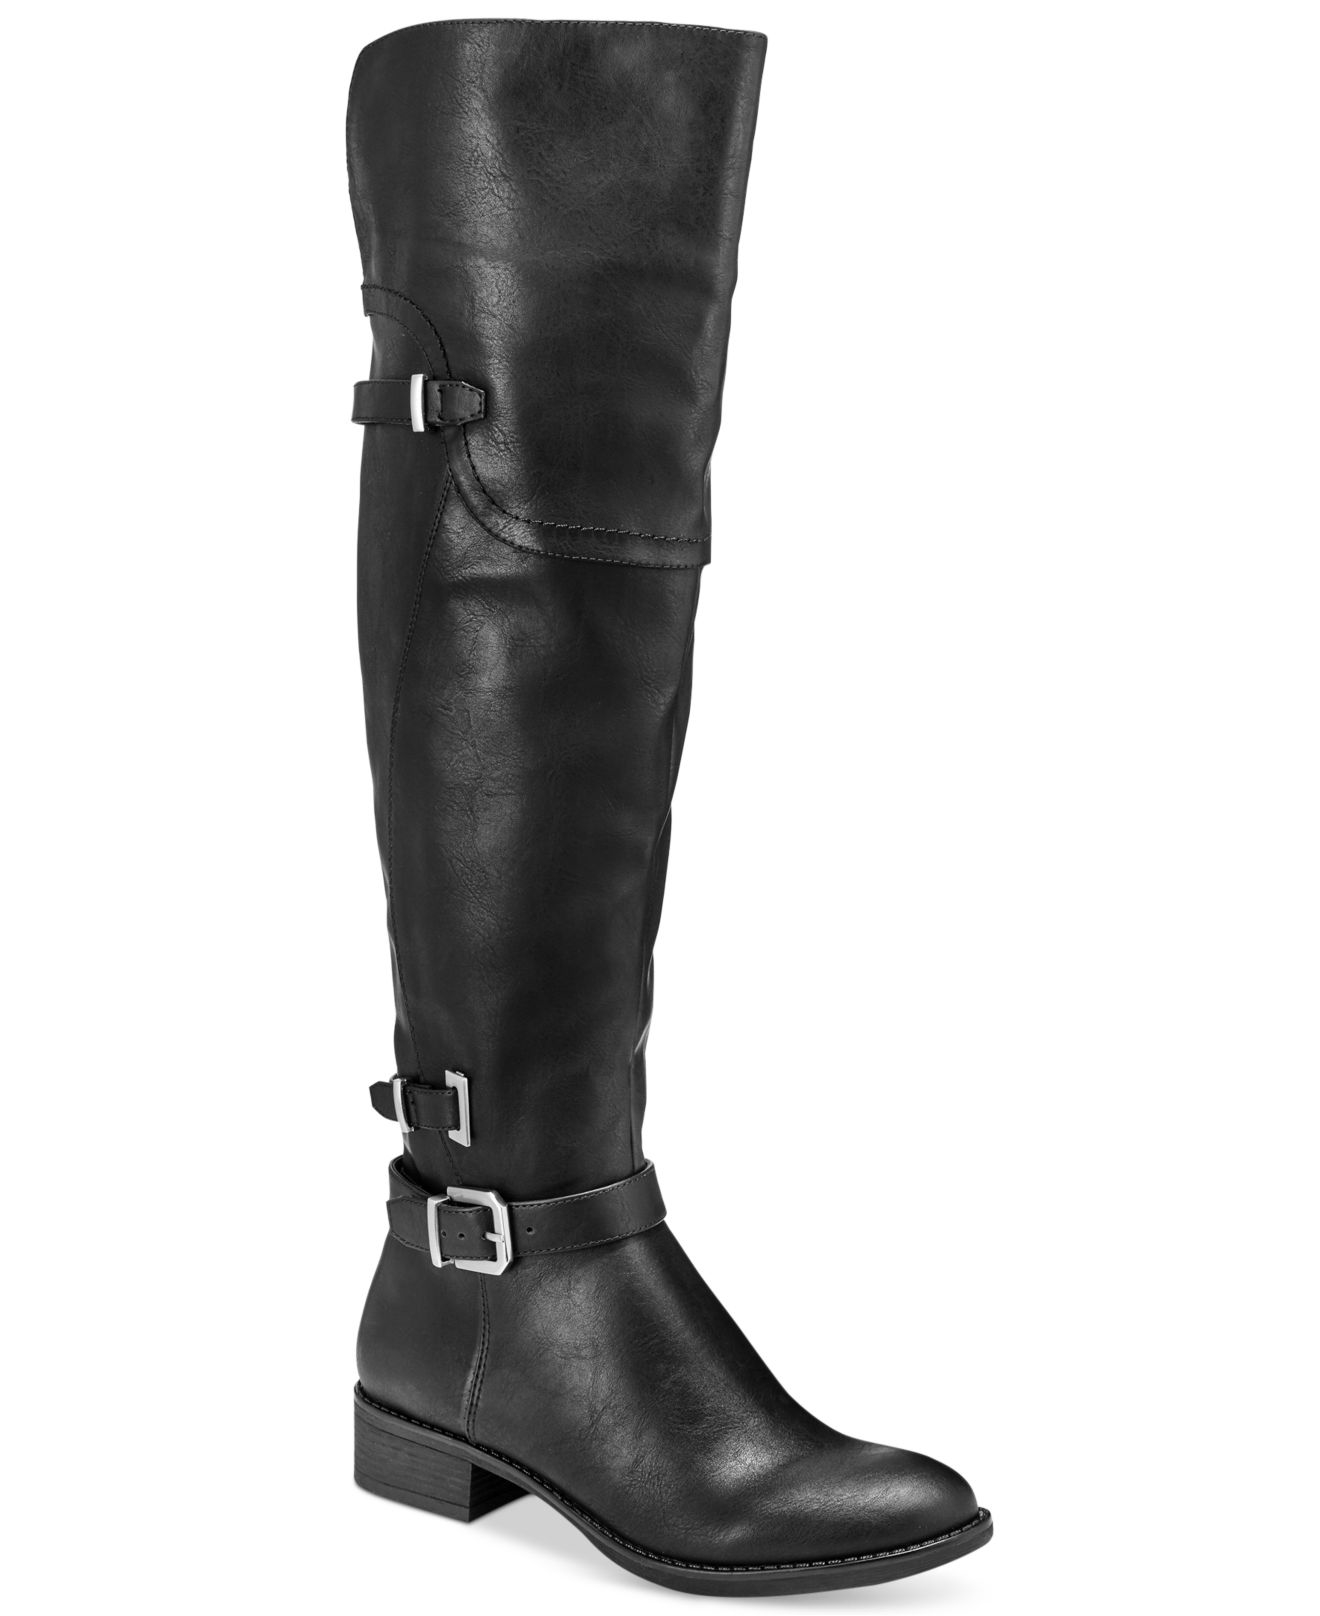 style co adaline the knee boots in black lyst